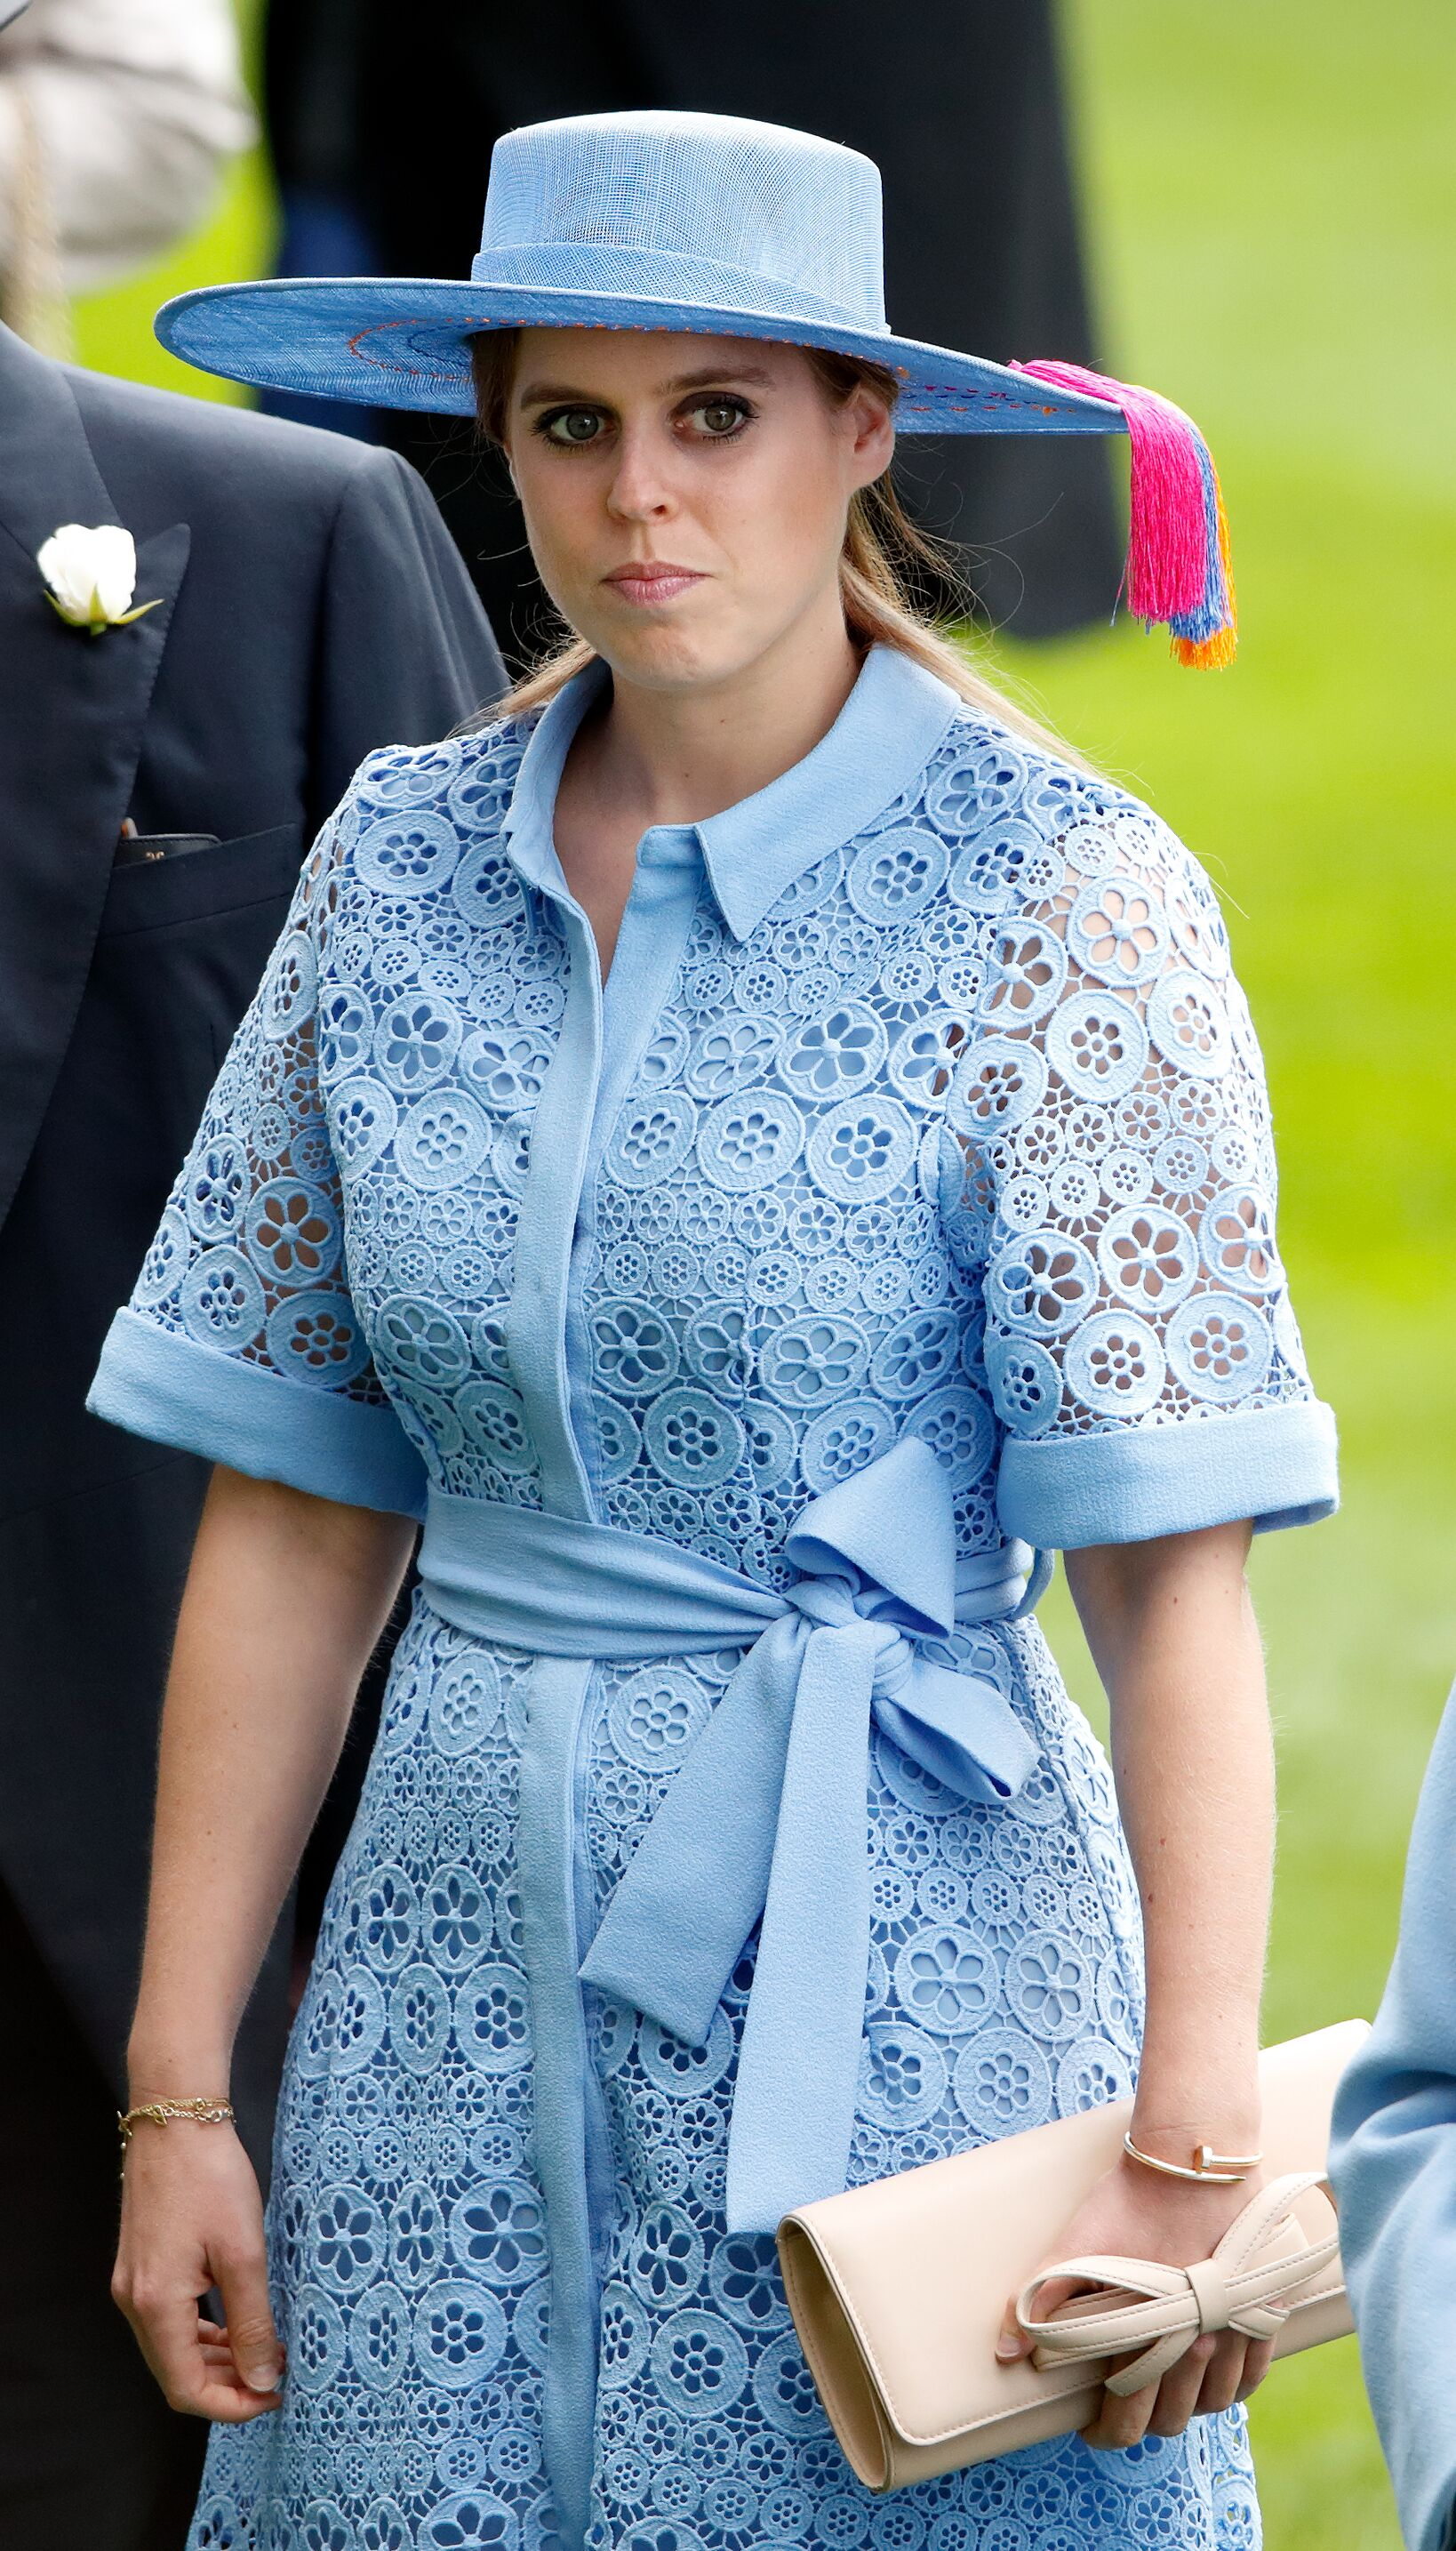 Princess Beatrice at Royal Ascot on June 18, 2019 in Ascot, England. | Source: Getty Images